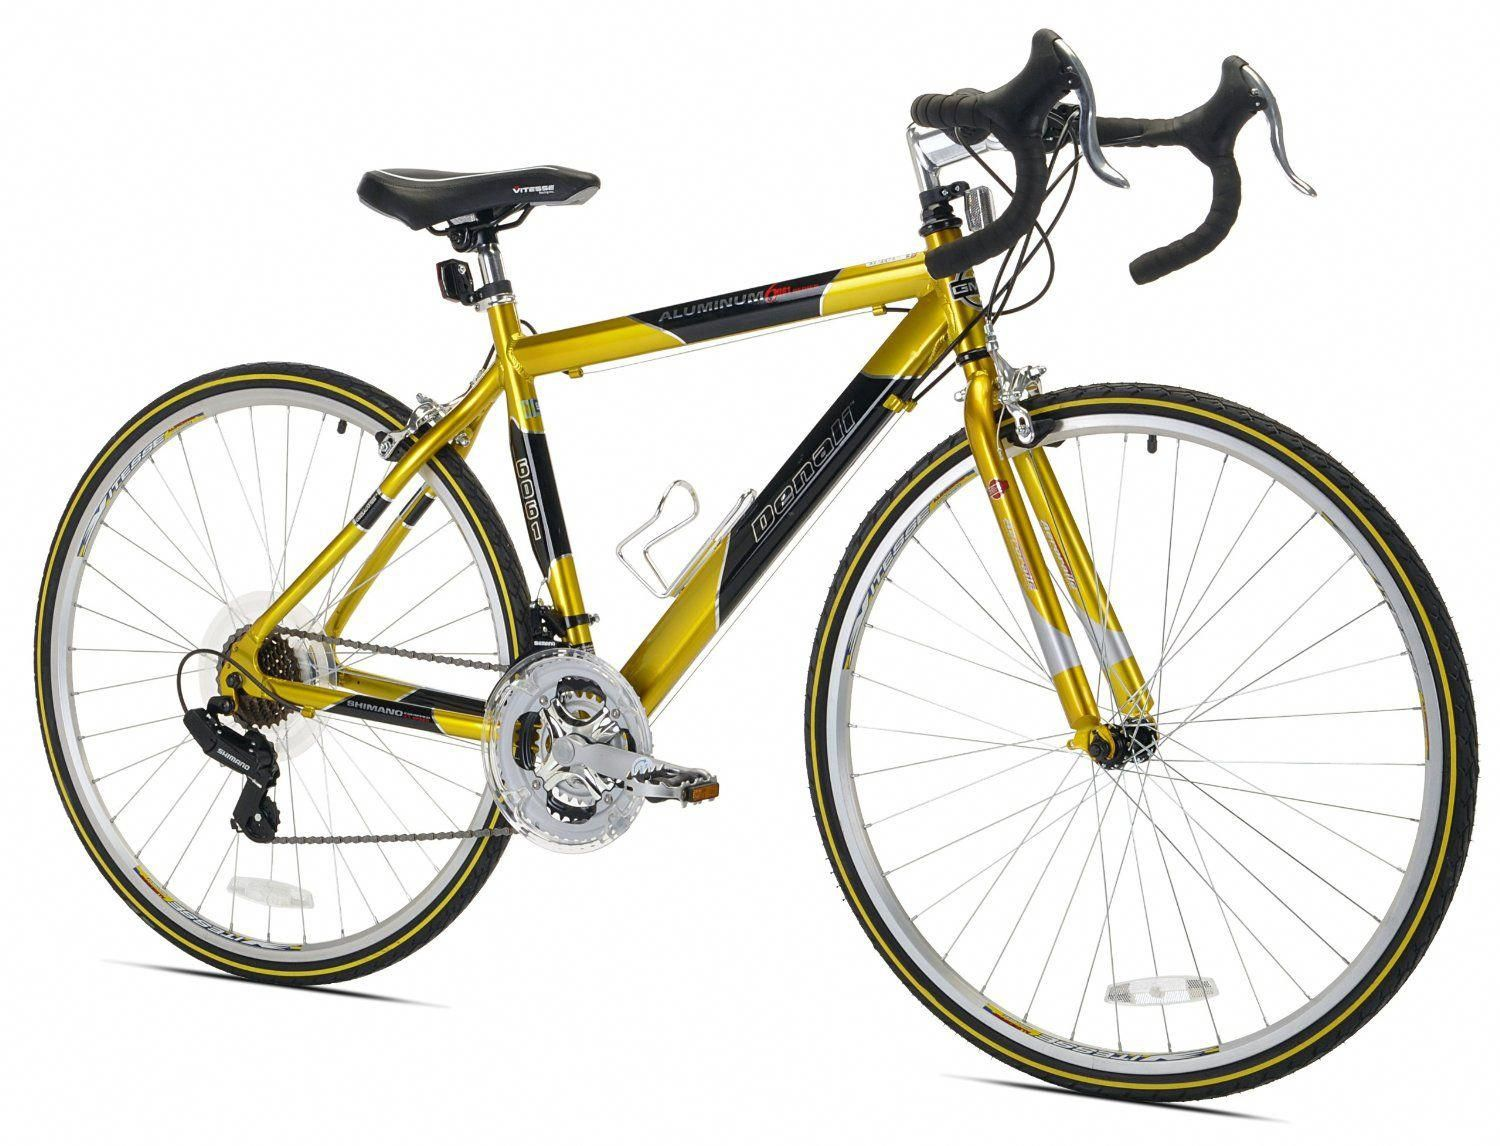 Gmc Denali Men S Road Bike Is Designed For The Everyday Rider